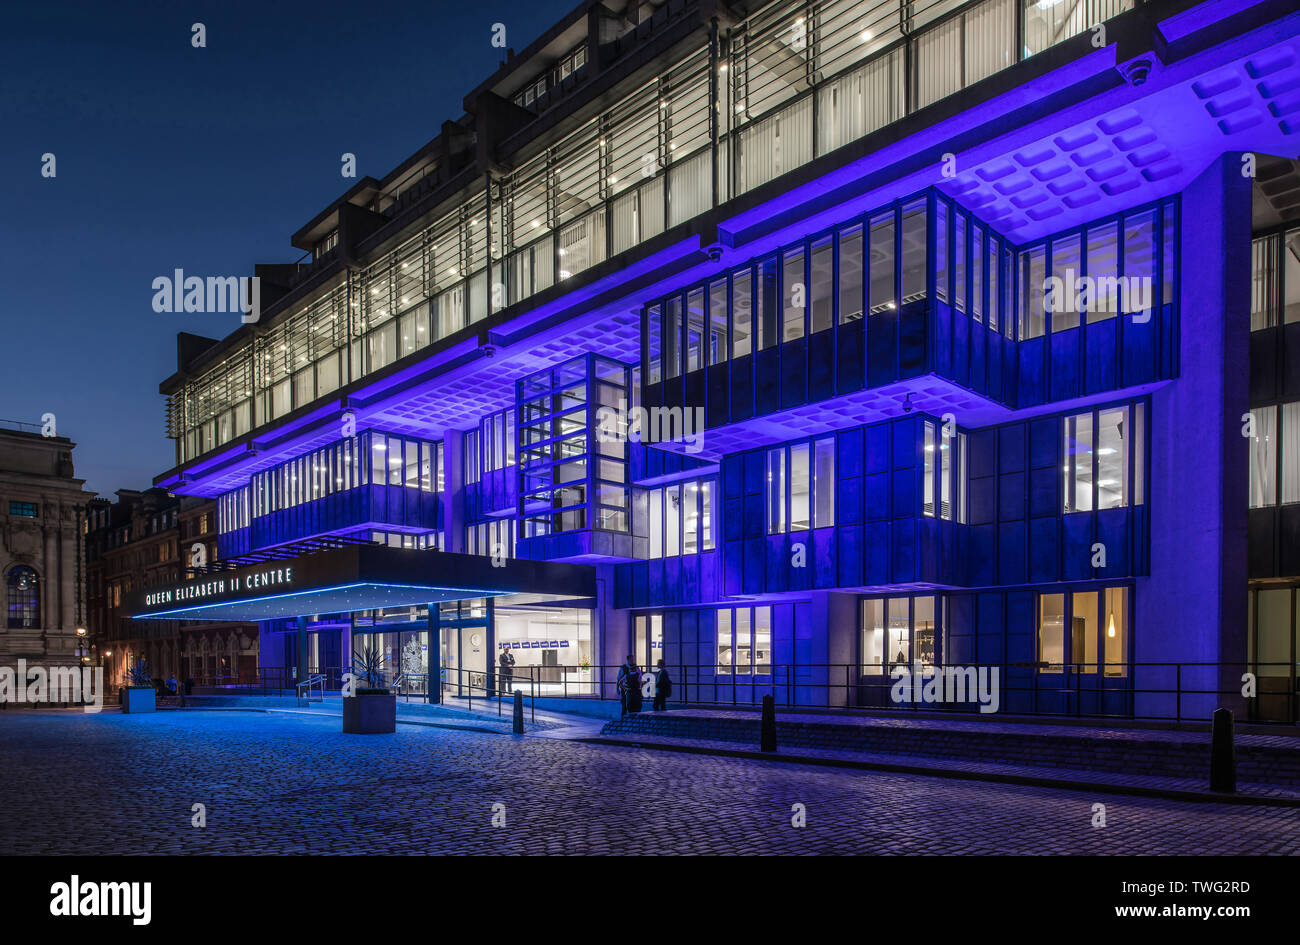 Queen Elizabeth 11 Centre, Westminster, London, United Kingdom at twilight, with artifical lighting - Stock Image